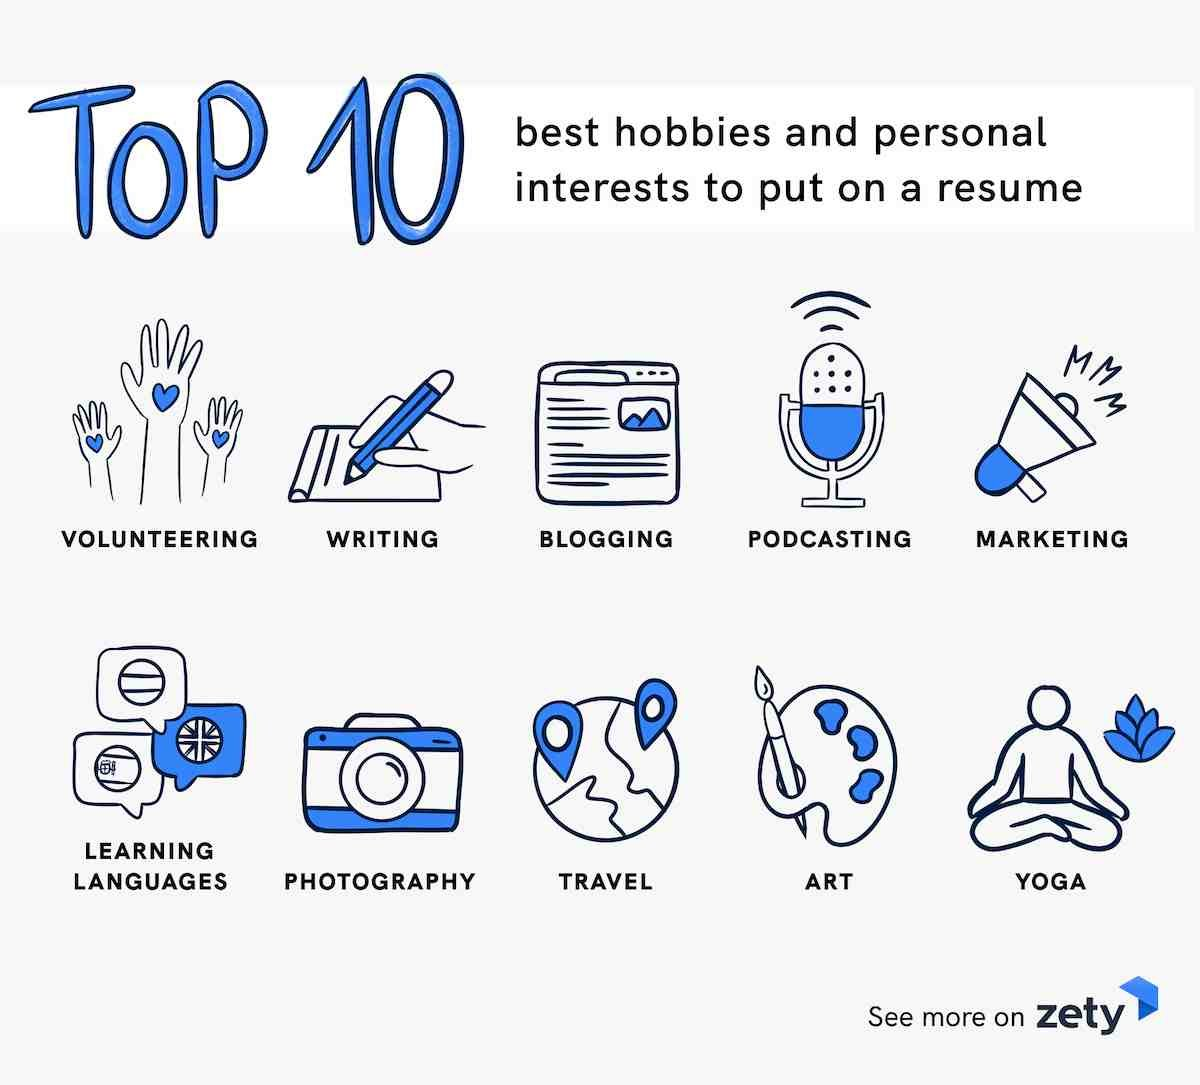 of hobbies and interests for resume cv examples travelling top best personal to put on Resume Hobbies Travelling Resume